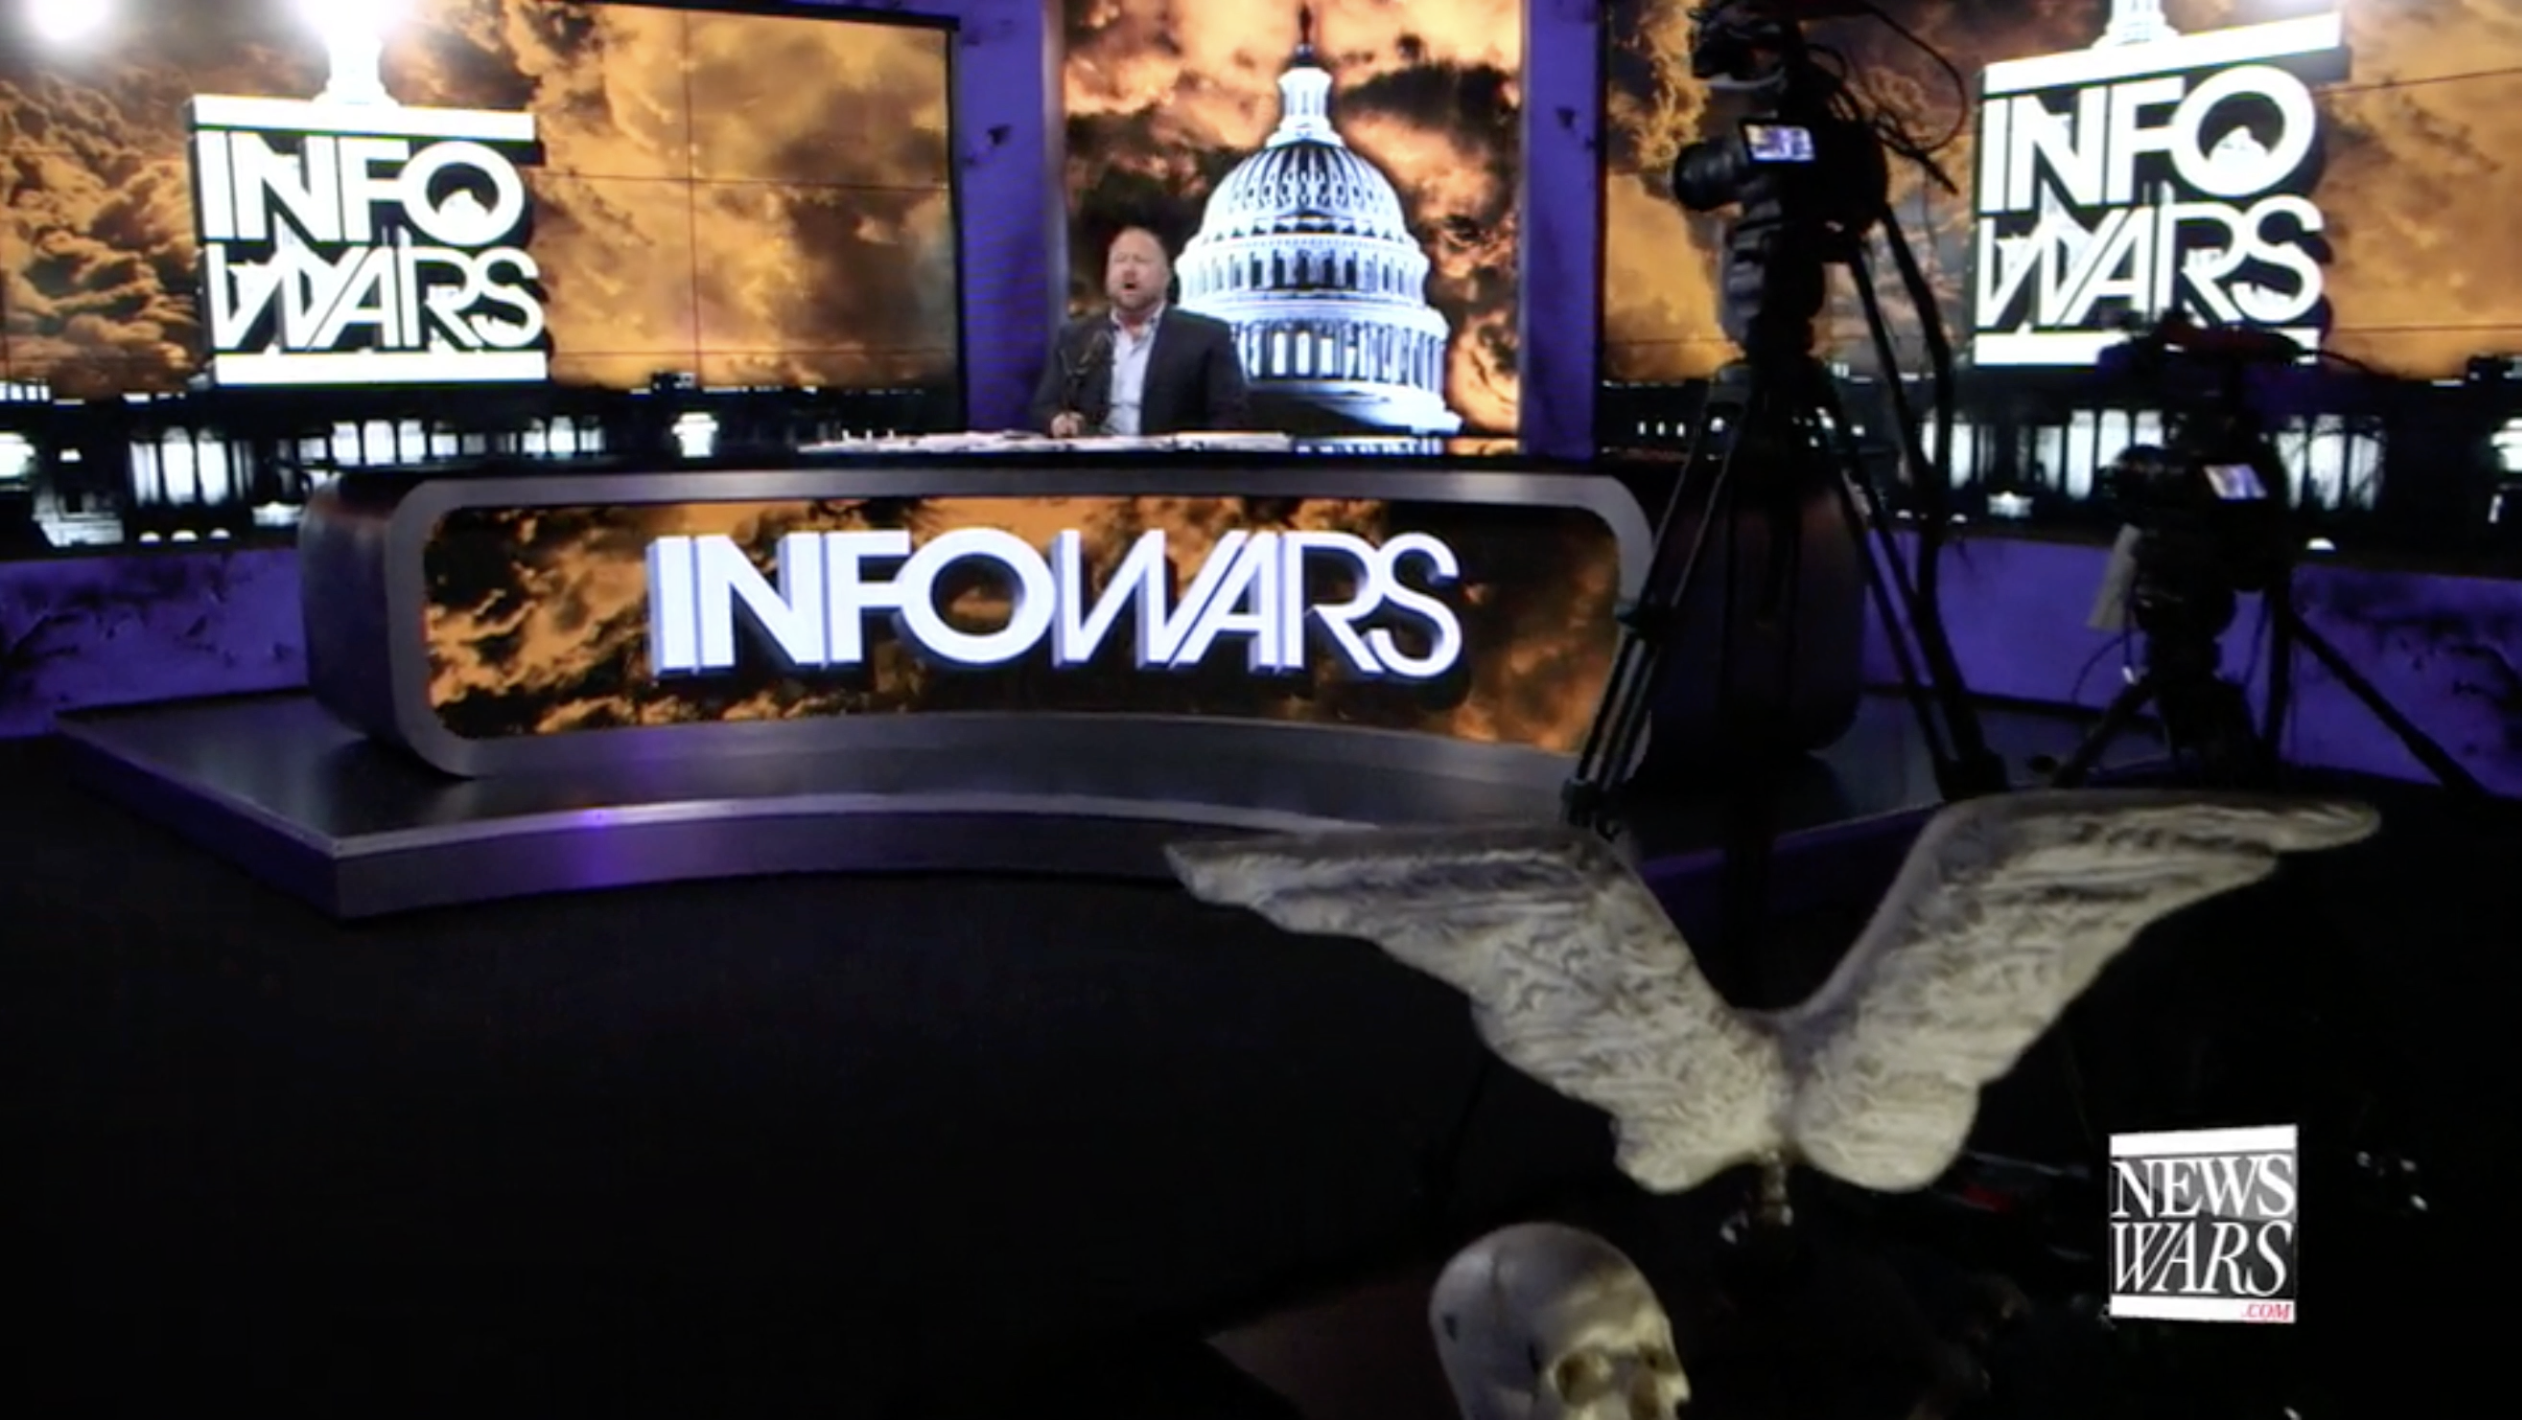 Alex Jones Infowars Studio EXZM Angel Wings Skull August 6th 2020